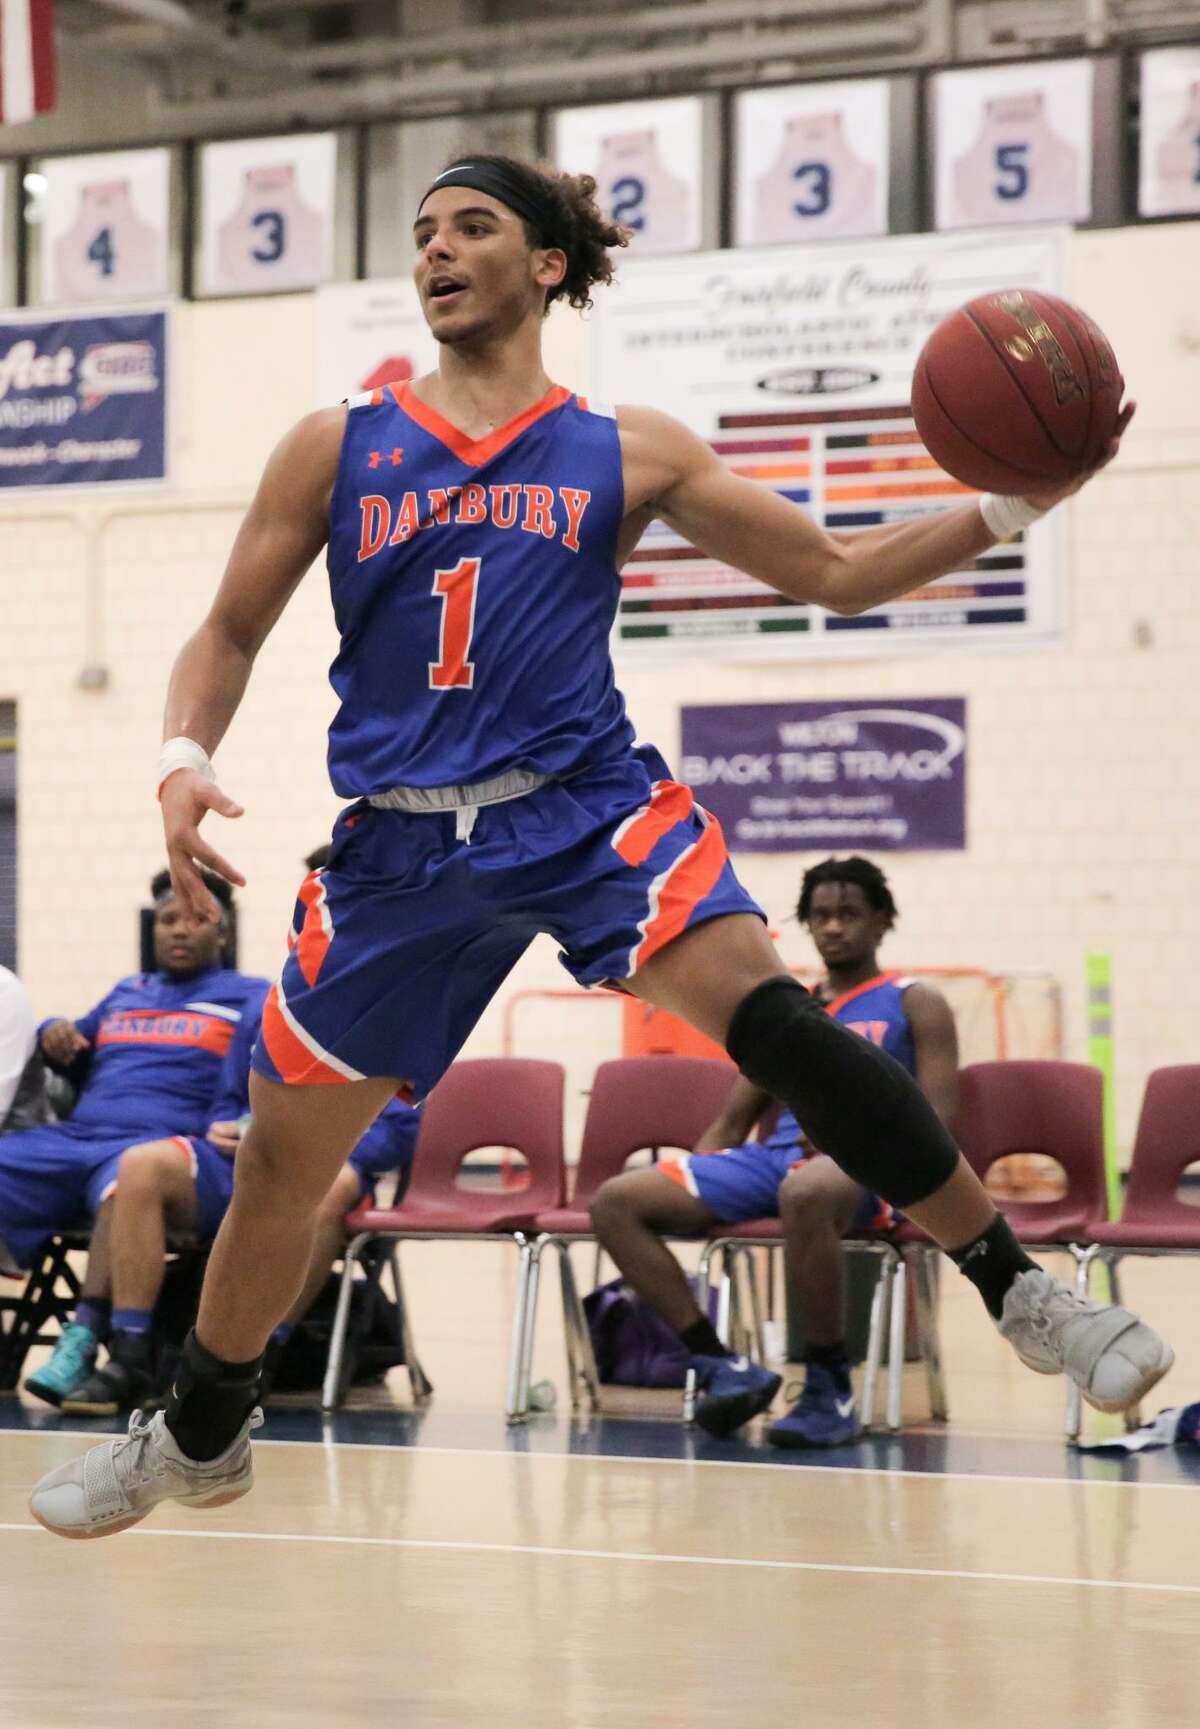 Danbury's Diante Vines leaps to recieve a pass during their game against Wilton at Wilton High School in Wilton, Conn. on Monday, February 12, 2018.